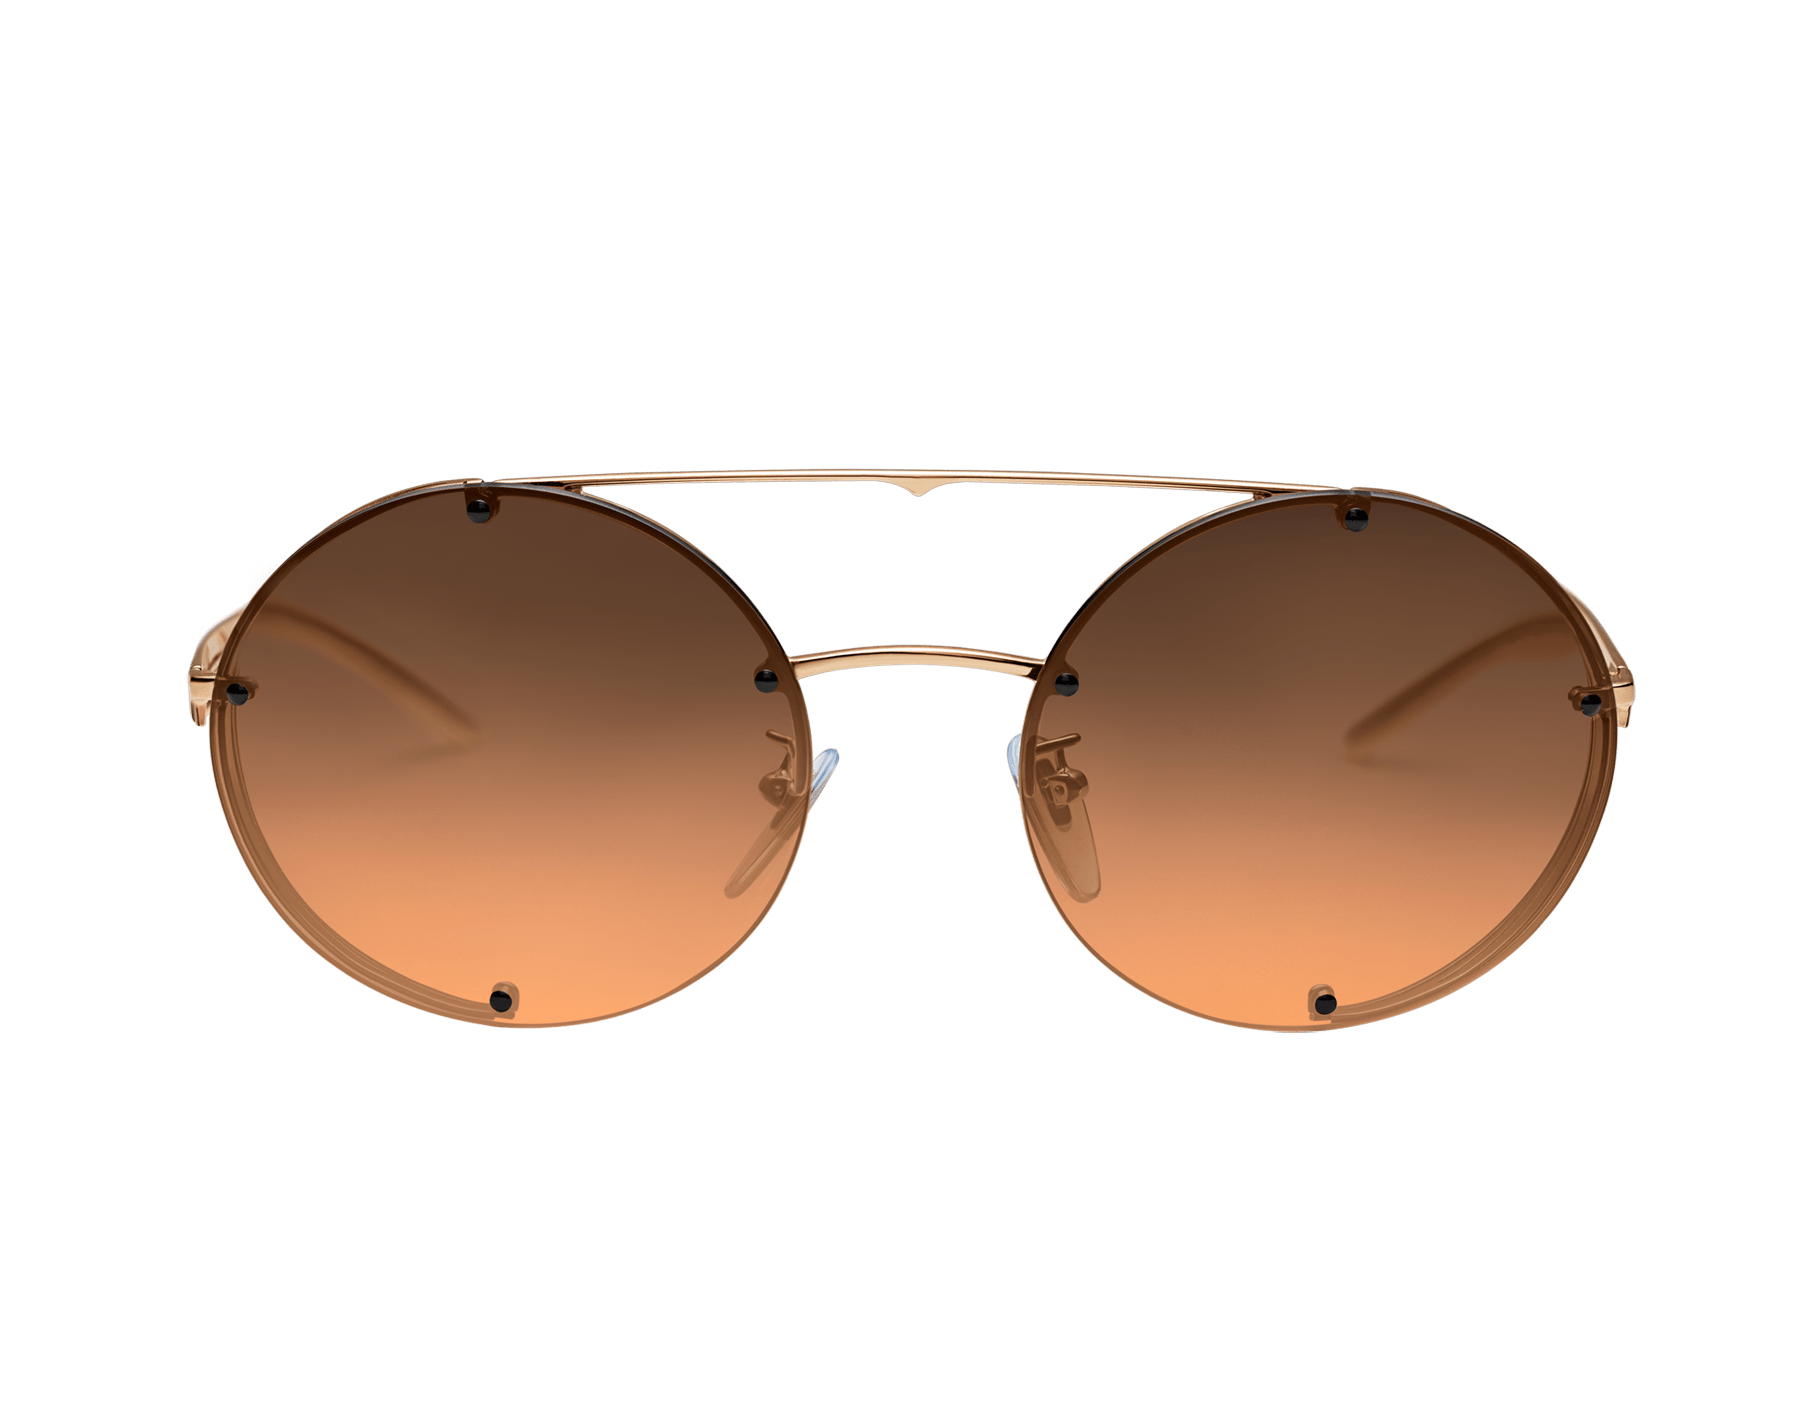 Bvlgari B.zero1 B.flyingstripe round metal aviator sunglasses. 903817 image 2